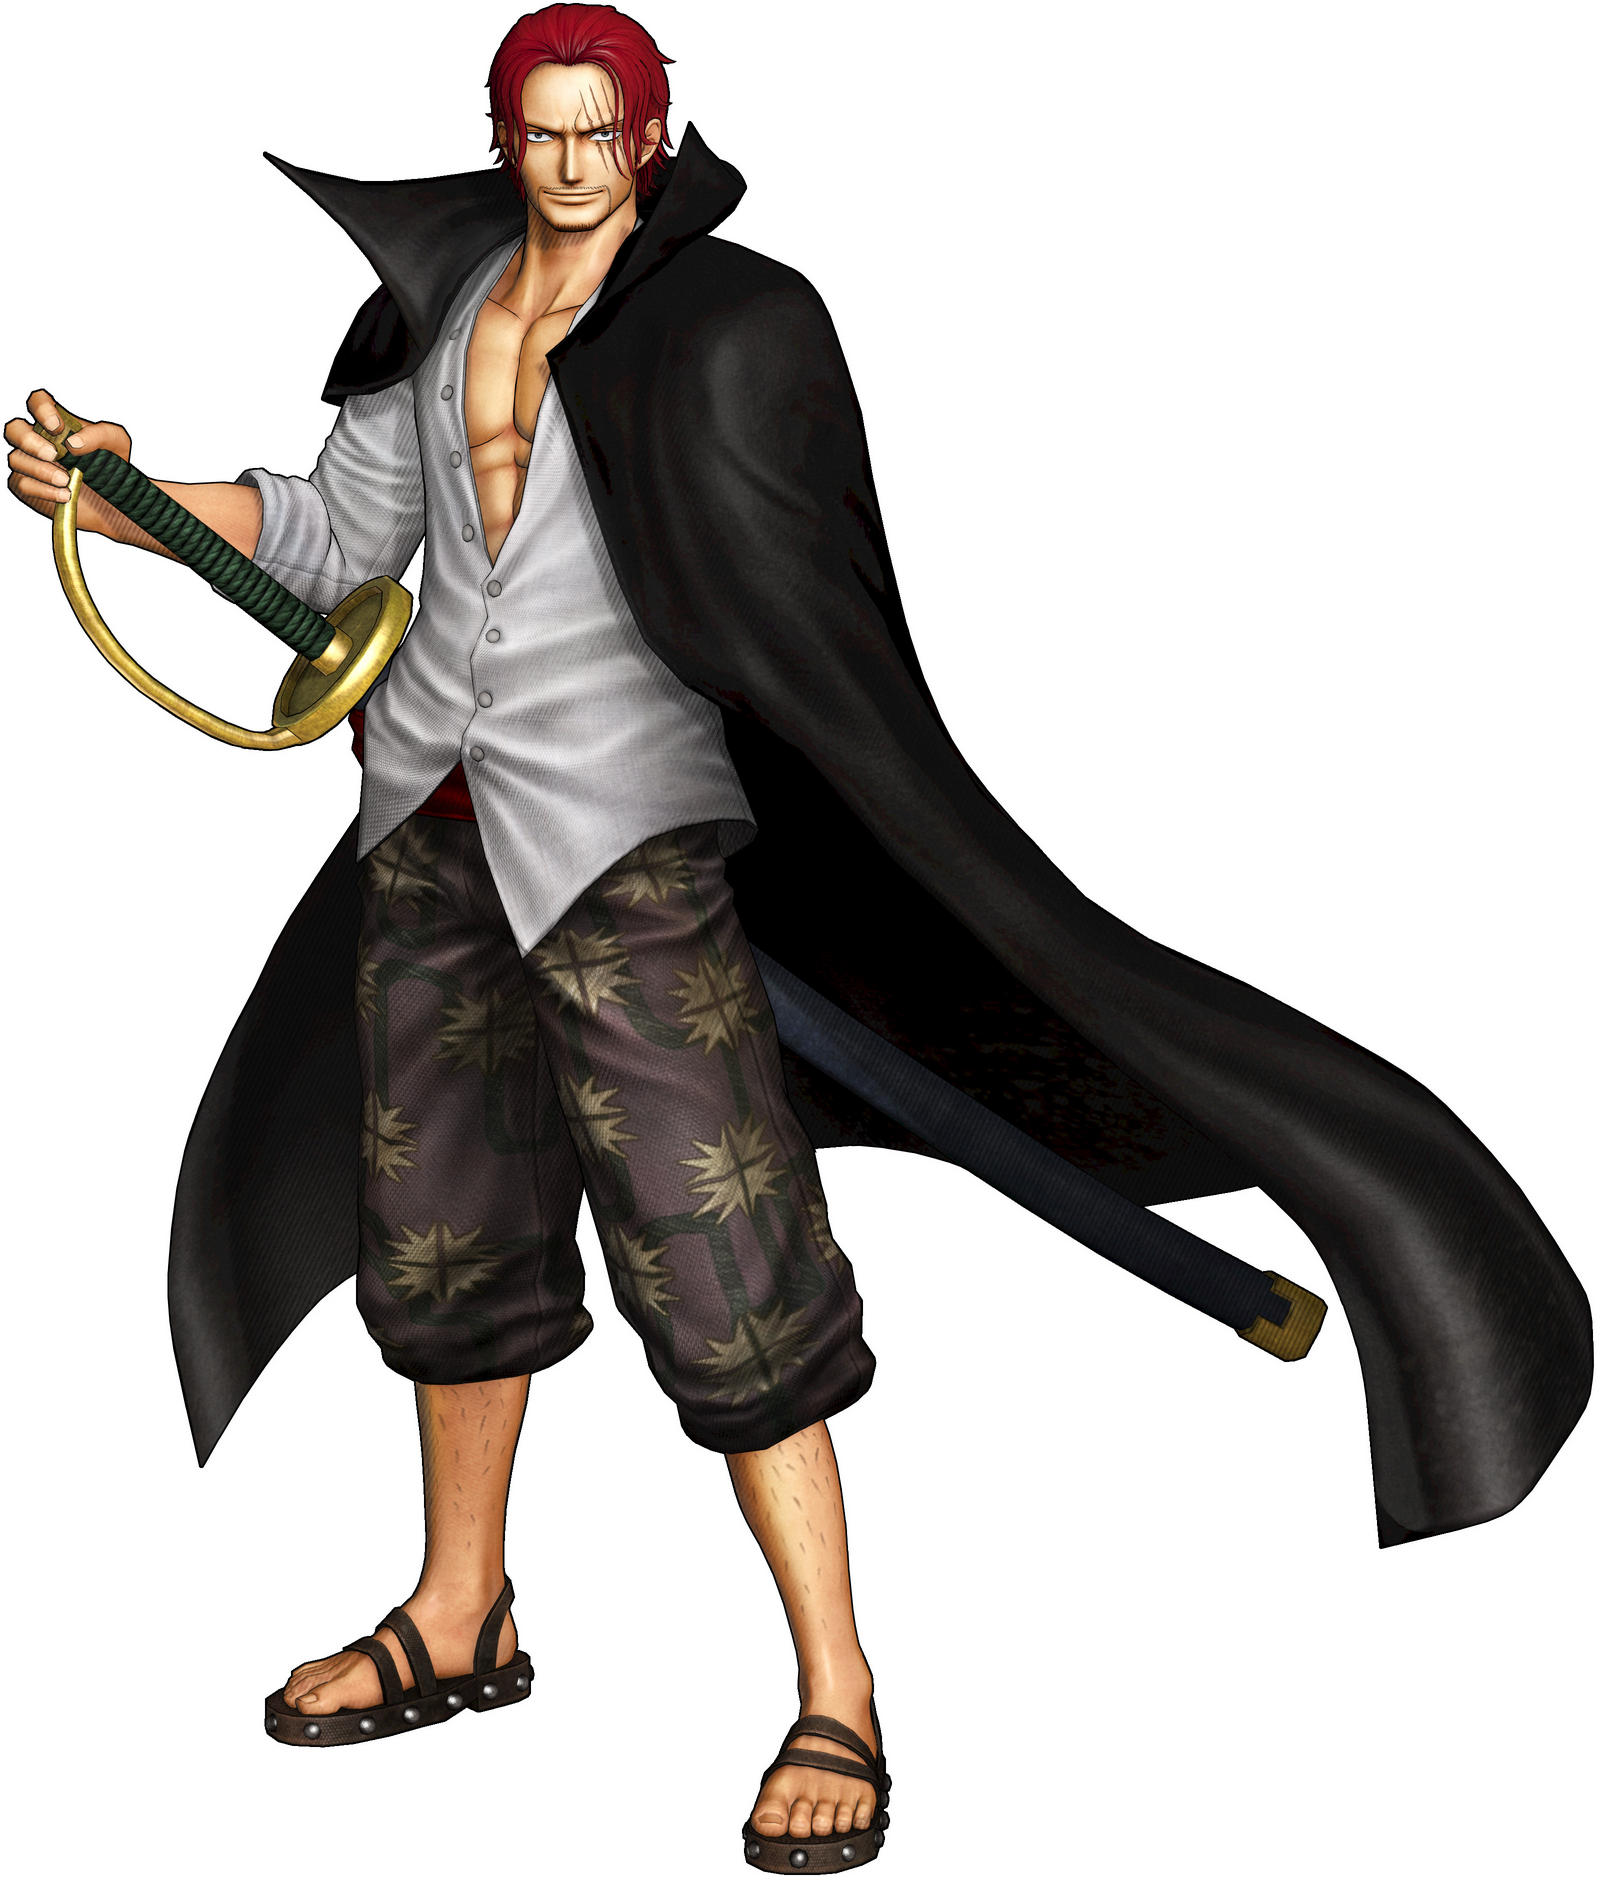 Marshall D Teach Pirate Warriors: Image - Shanks Pirate Warriors 3.png